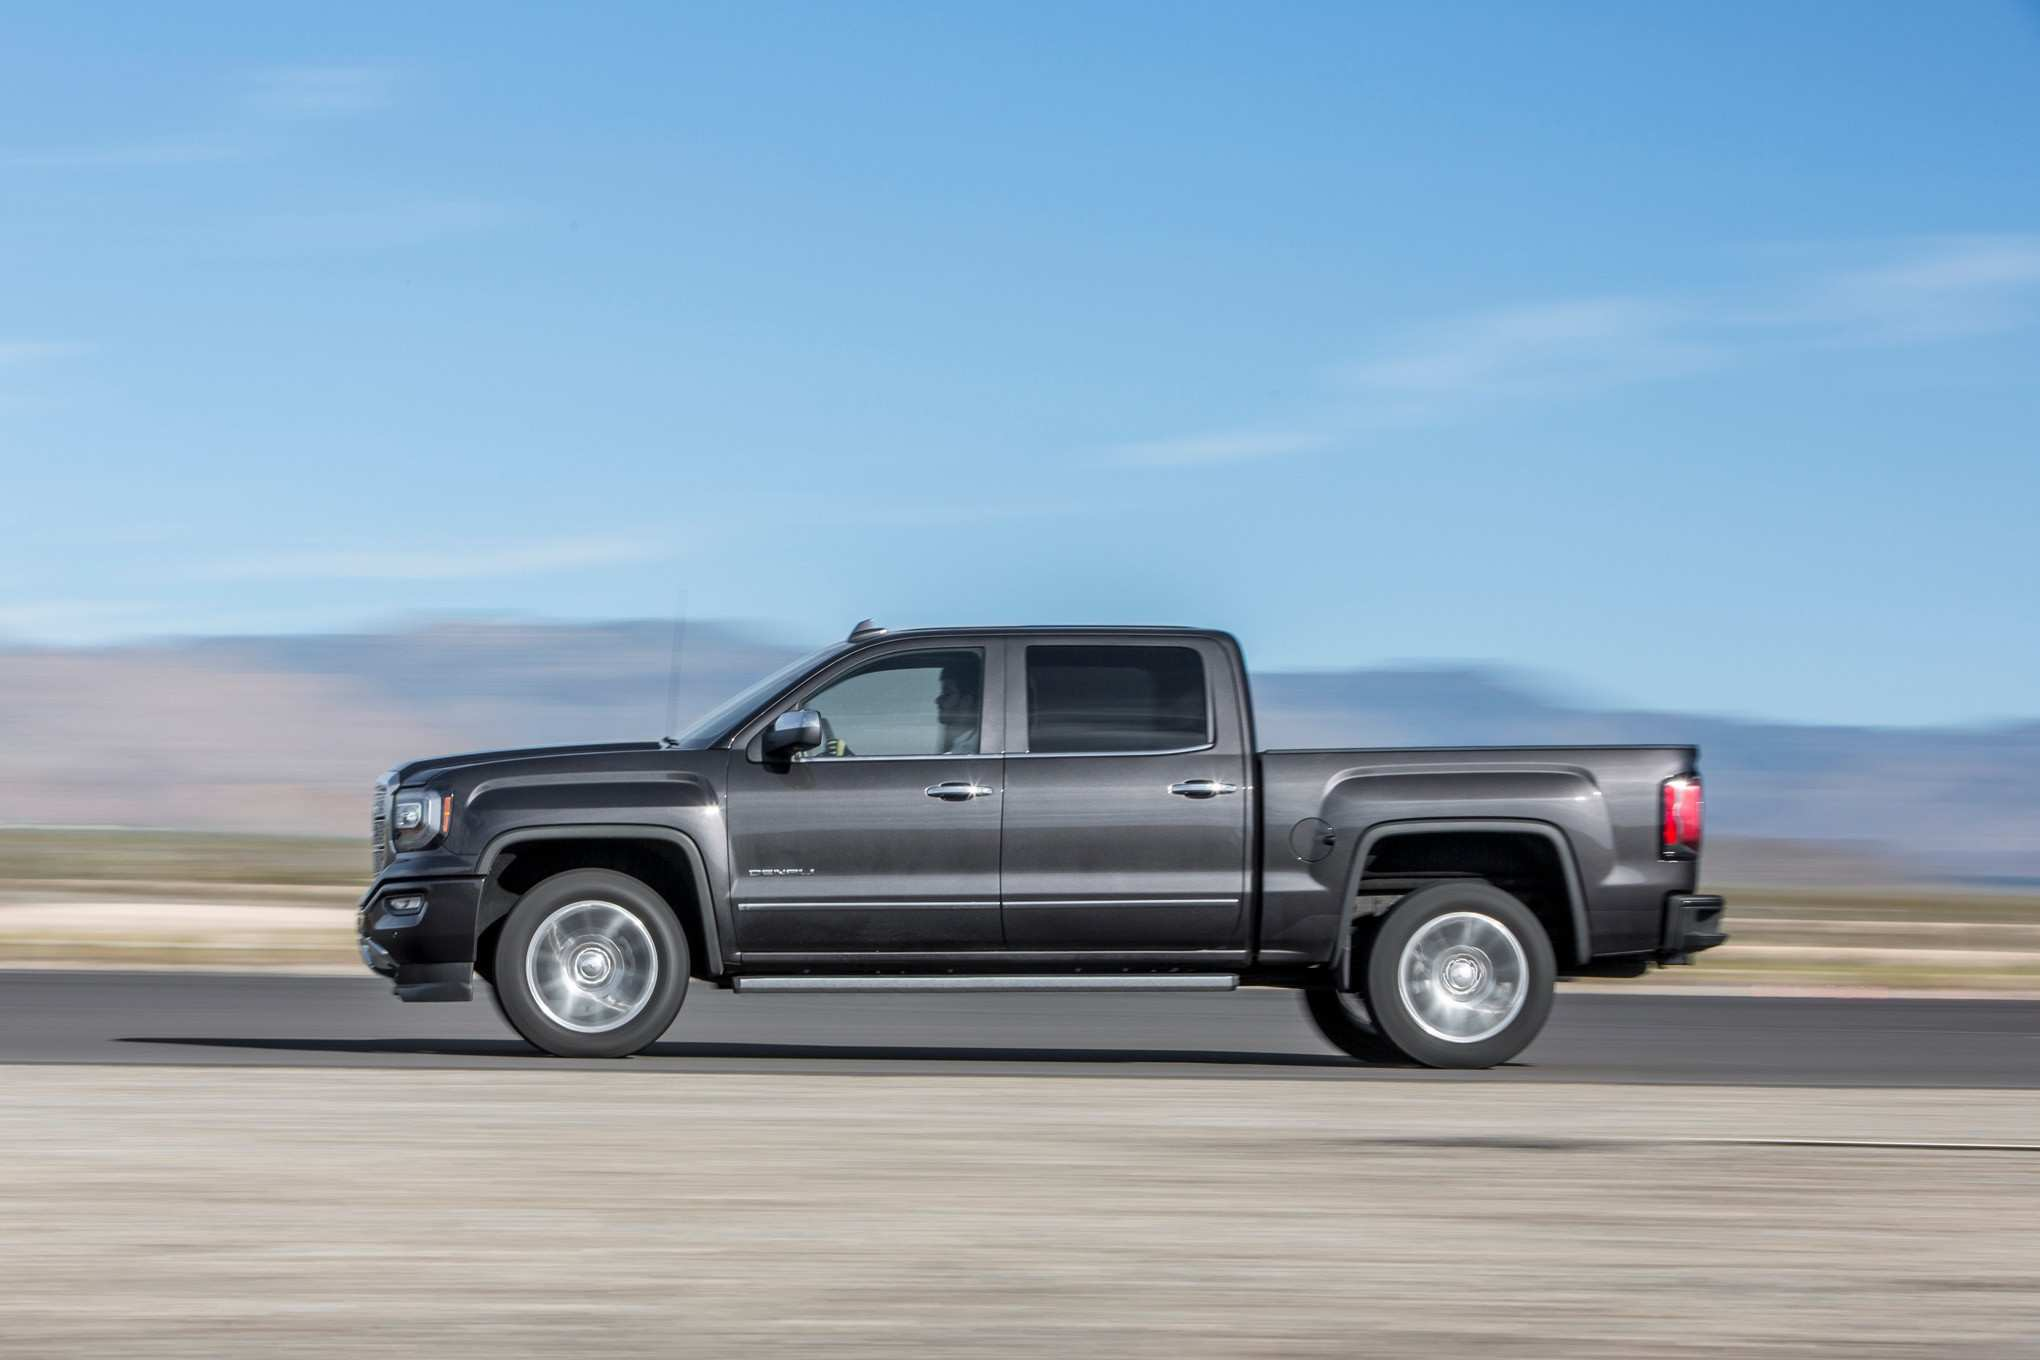 46 A 2020 GMC Sierra 1500 Diesel Spy Shoot